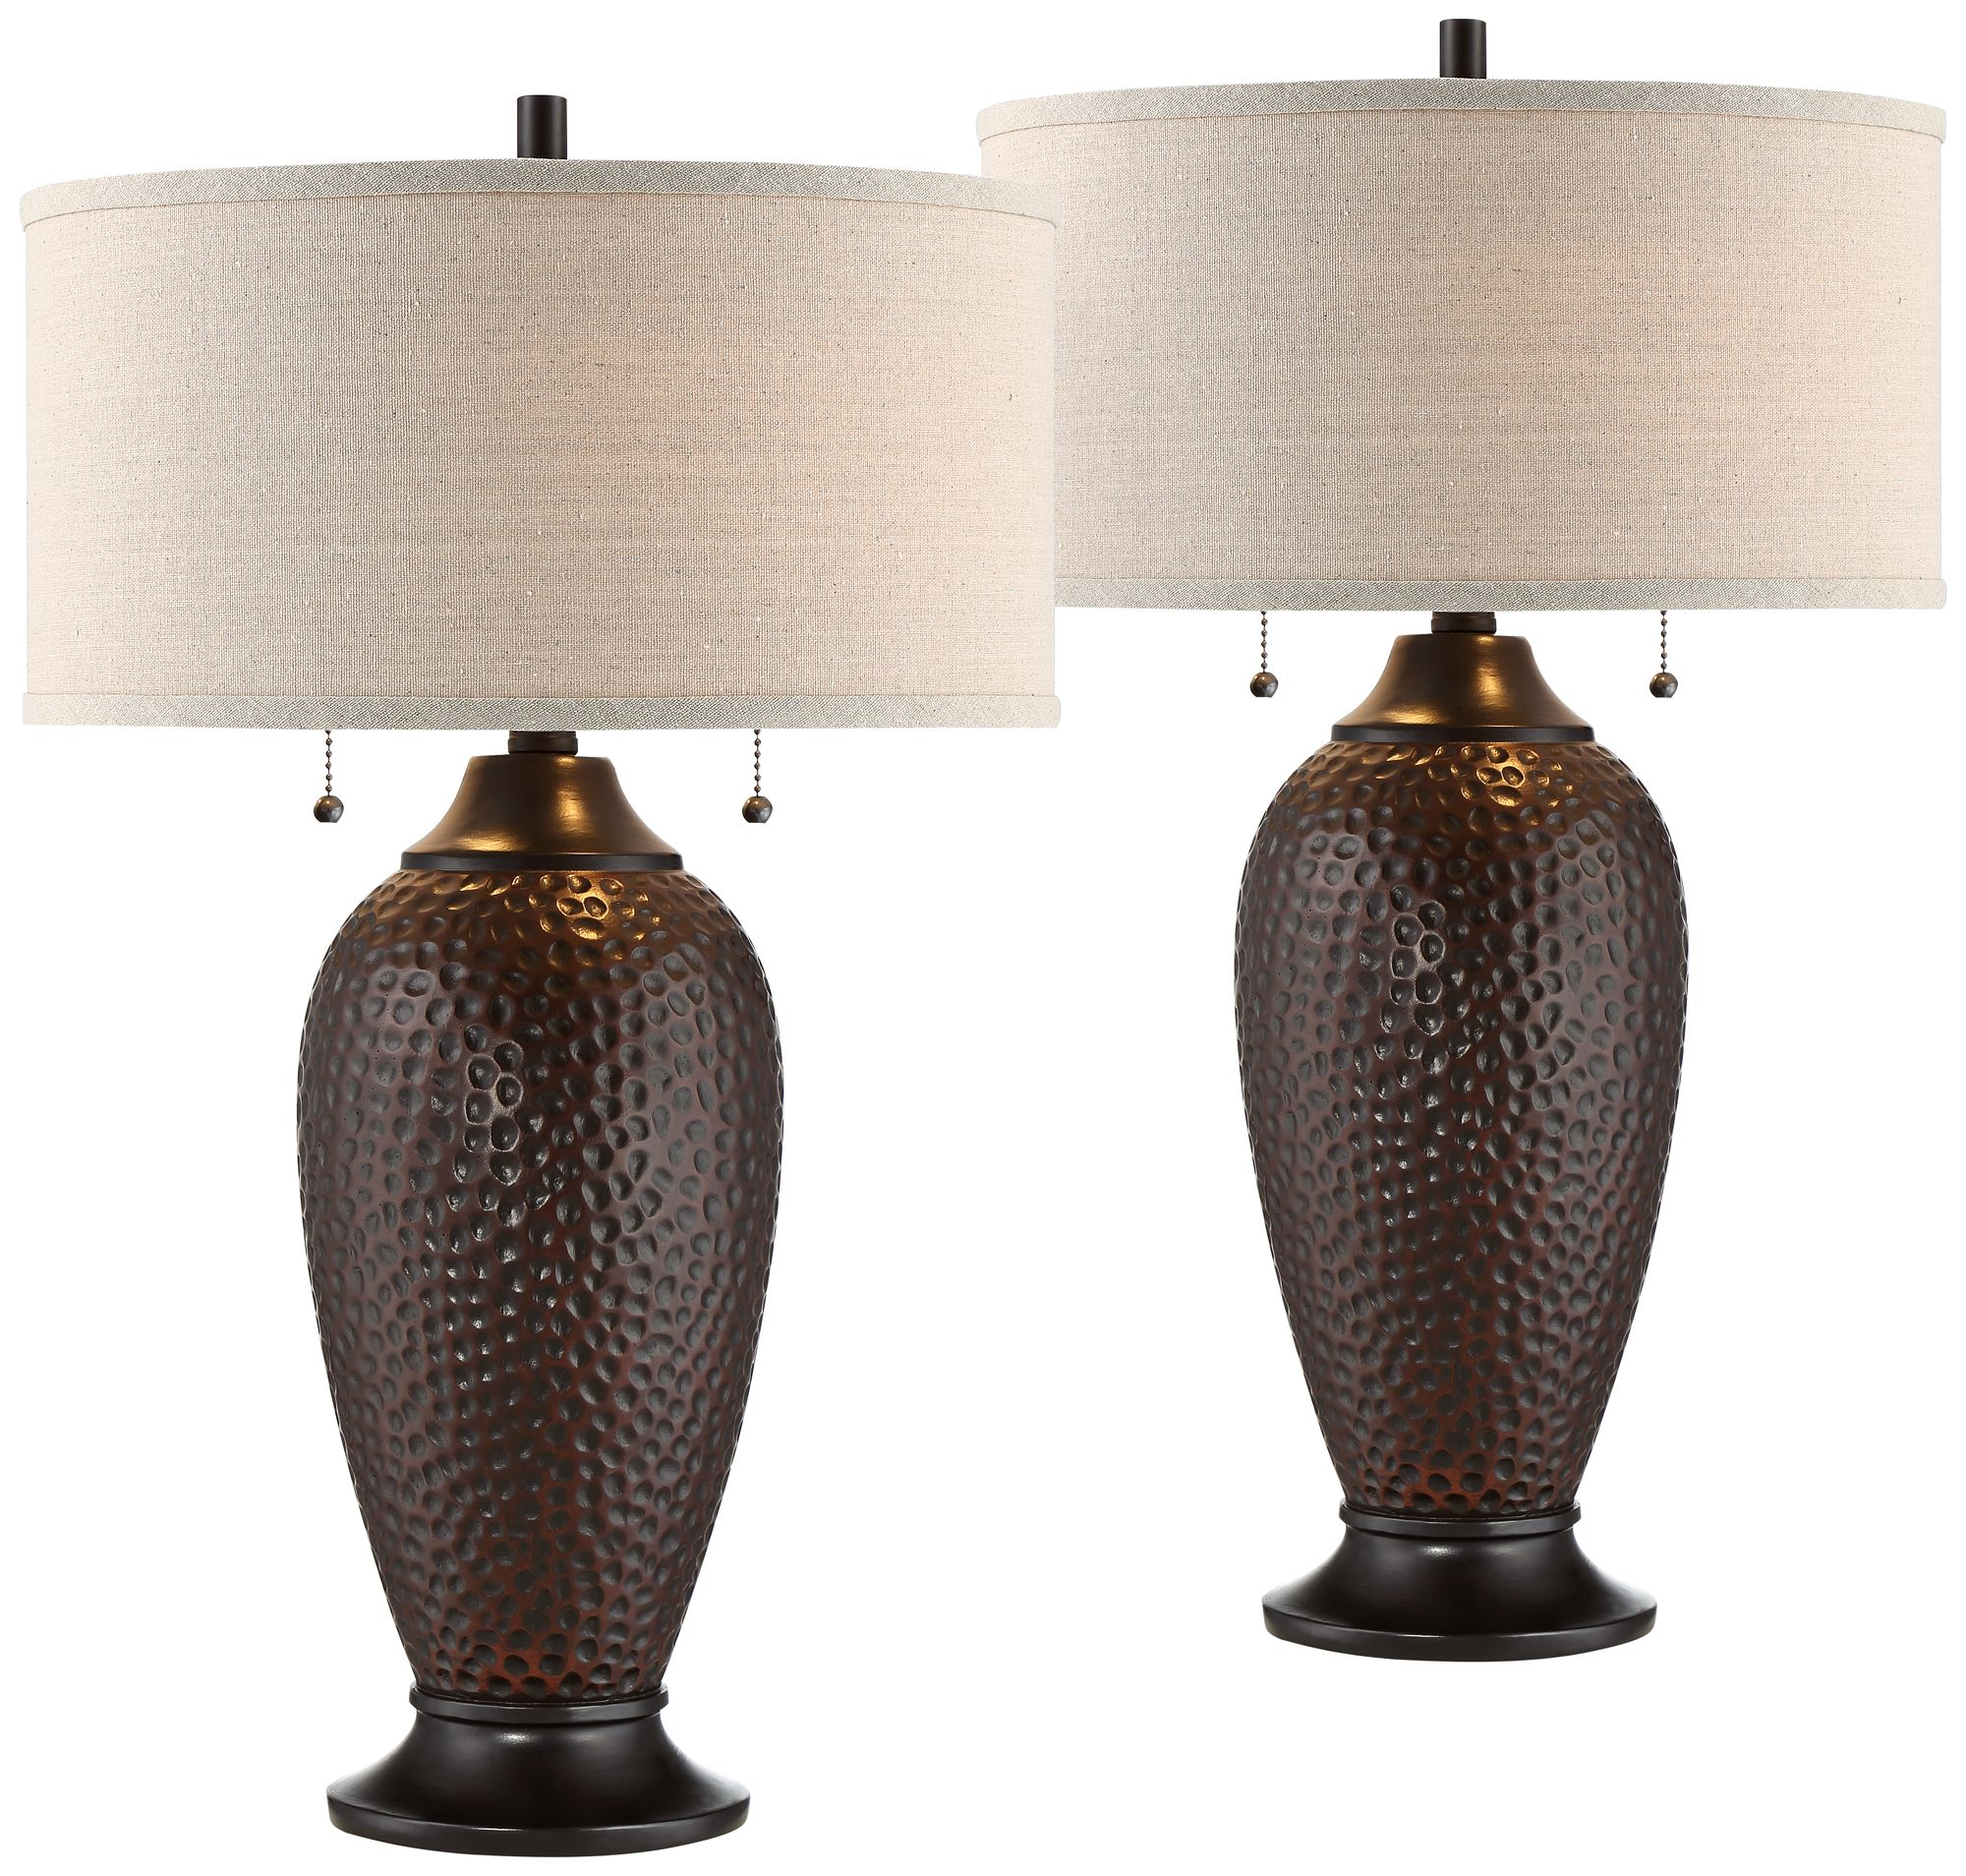 360 Lighting Modern Table Lamps Set of 2 Hammered Oiled ...